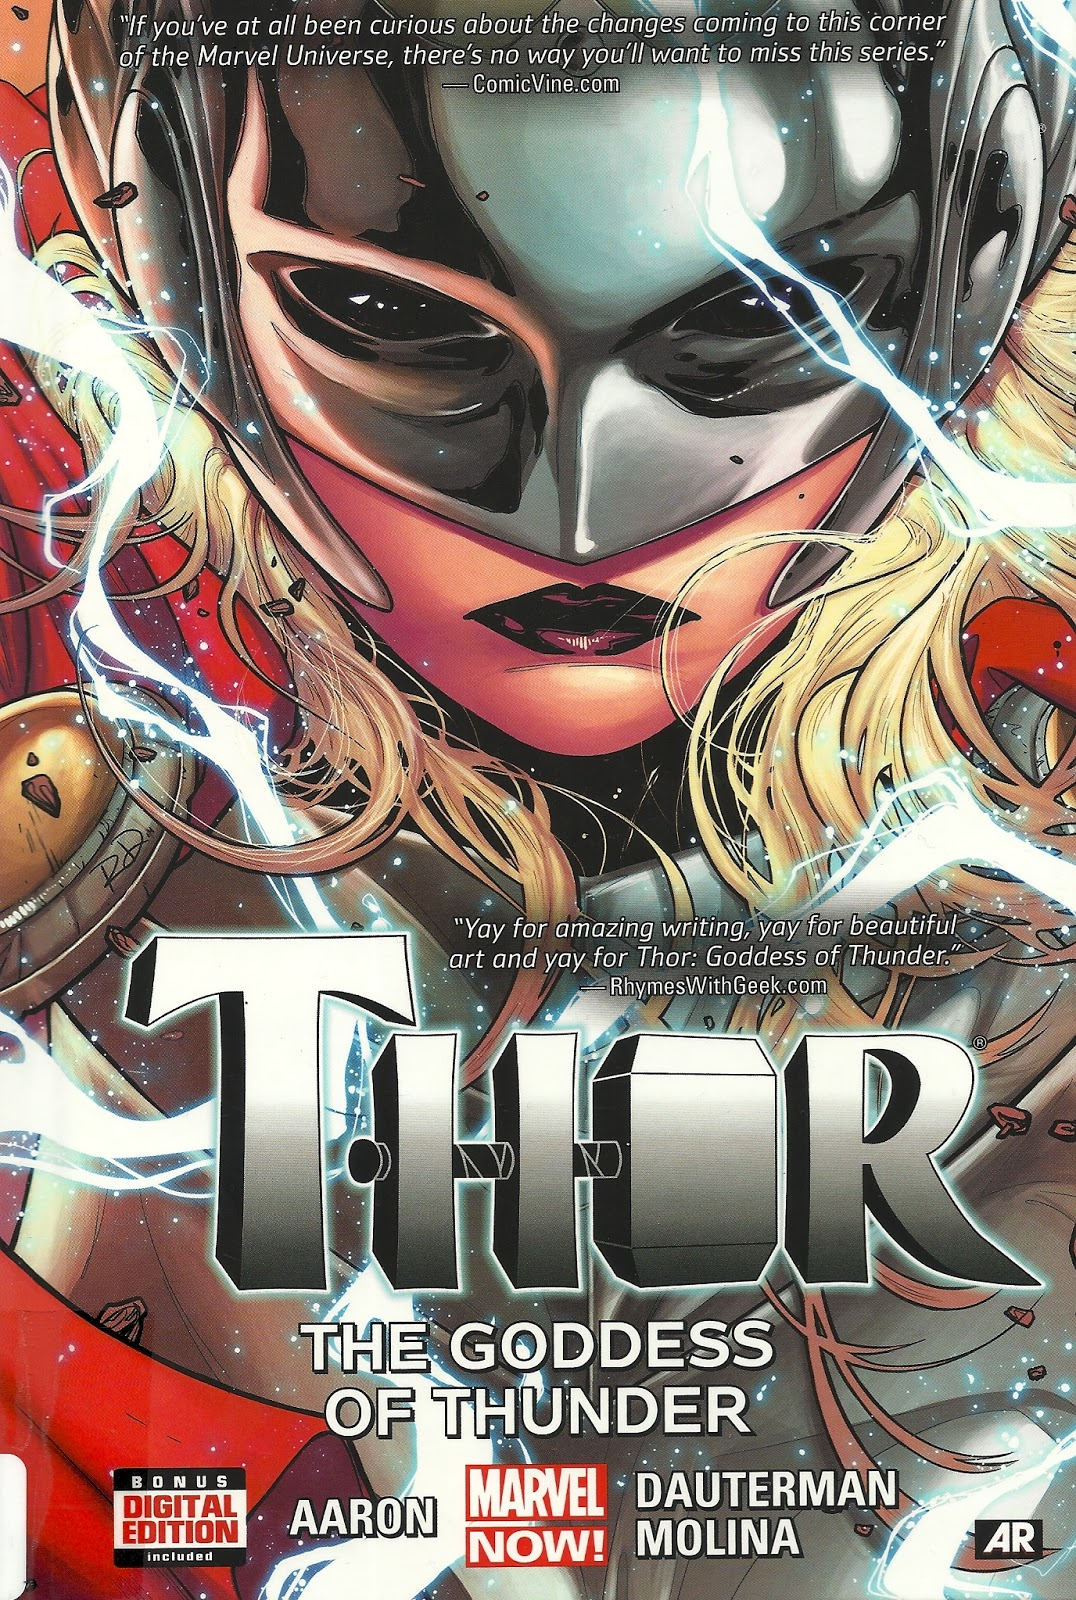 1 The Magician On Pinterest: Every Day Is Like Wednesday: Review: Thor Vol. 1: The